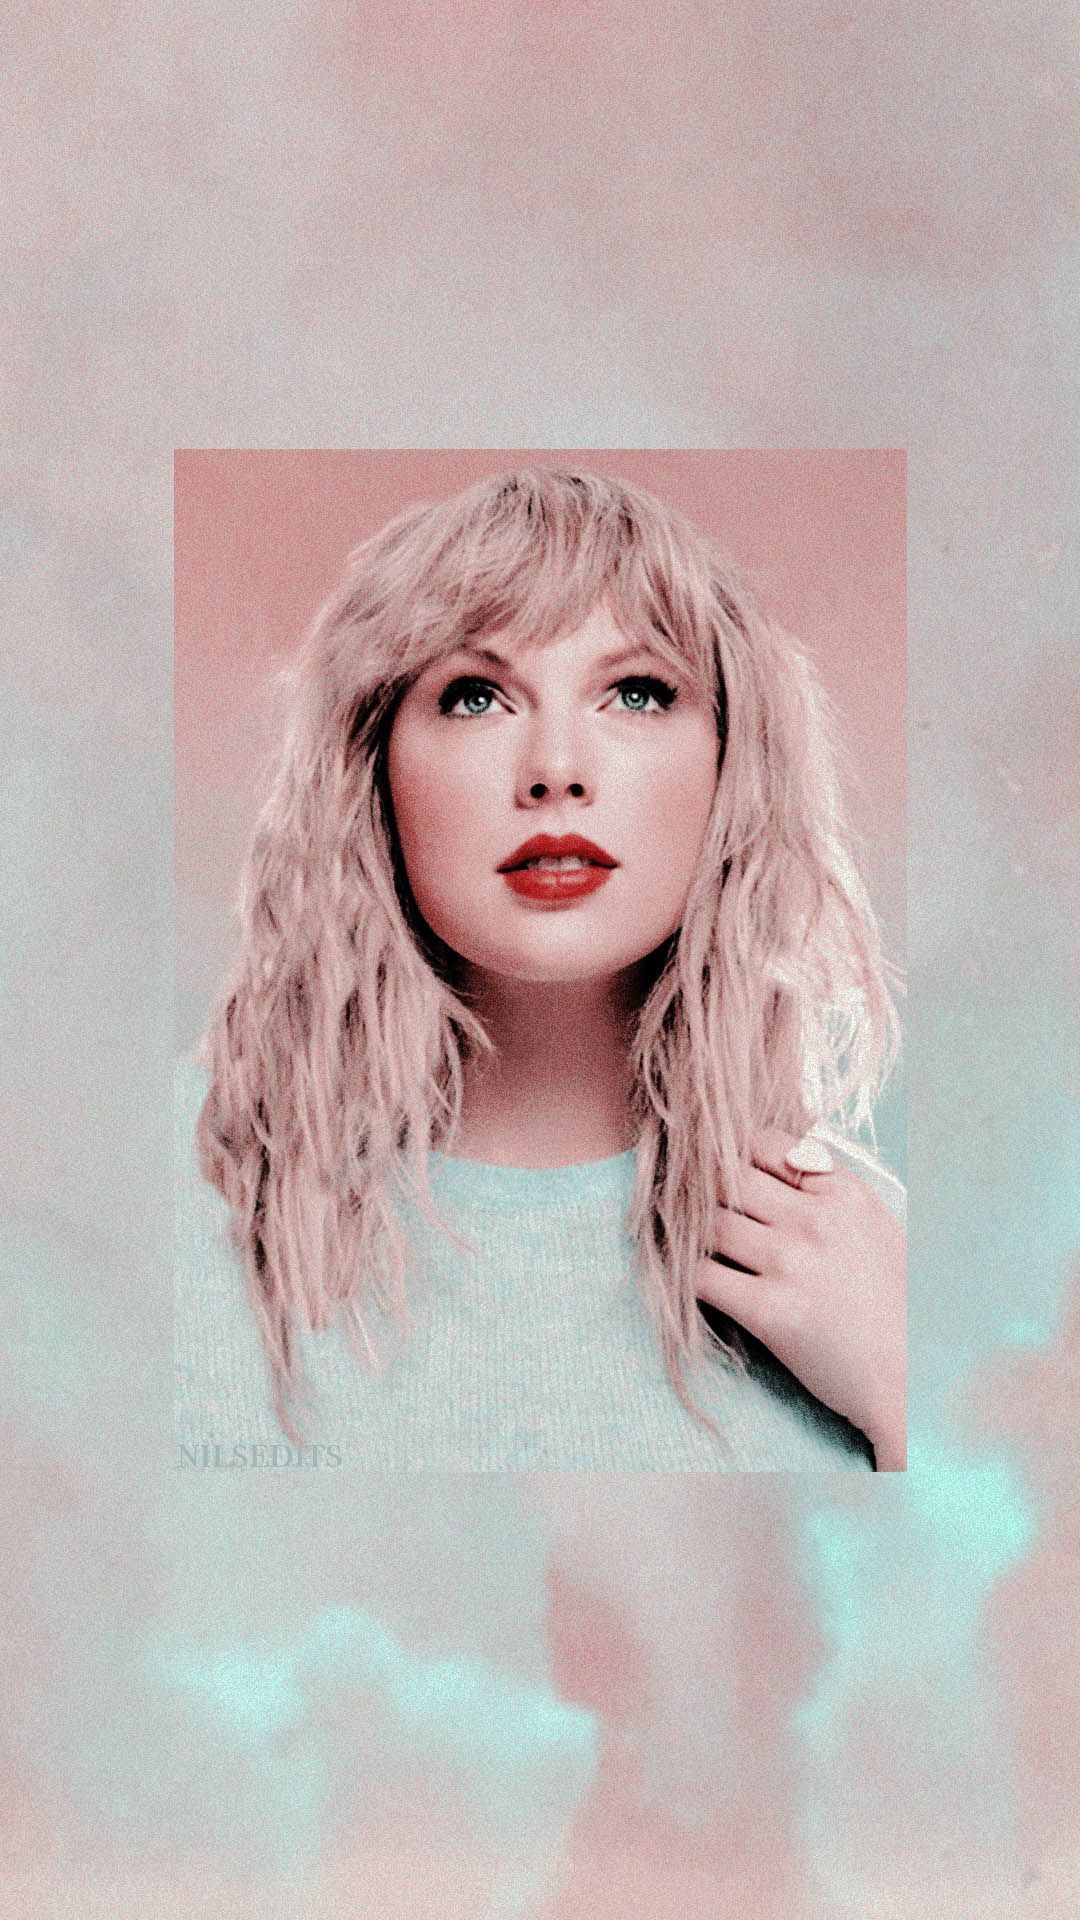 Aesthteic Taylor Swift Wallpaper Android Download Taylor Swift Wallpaper Taylor Swift Pictures Taylor Swift